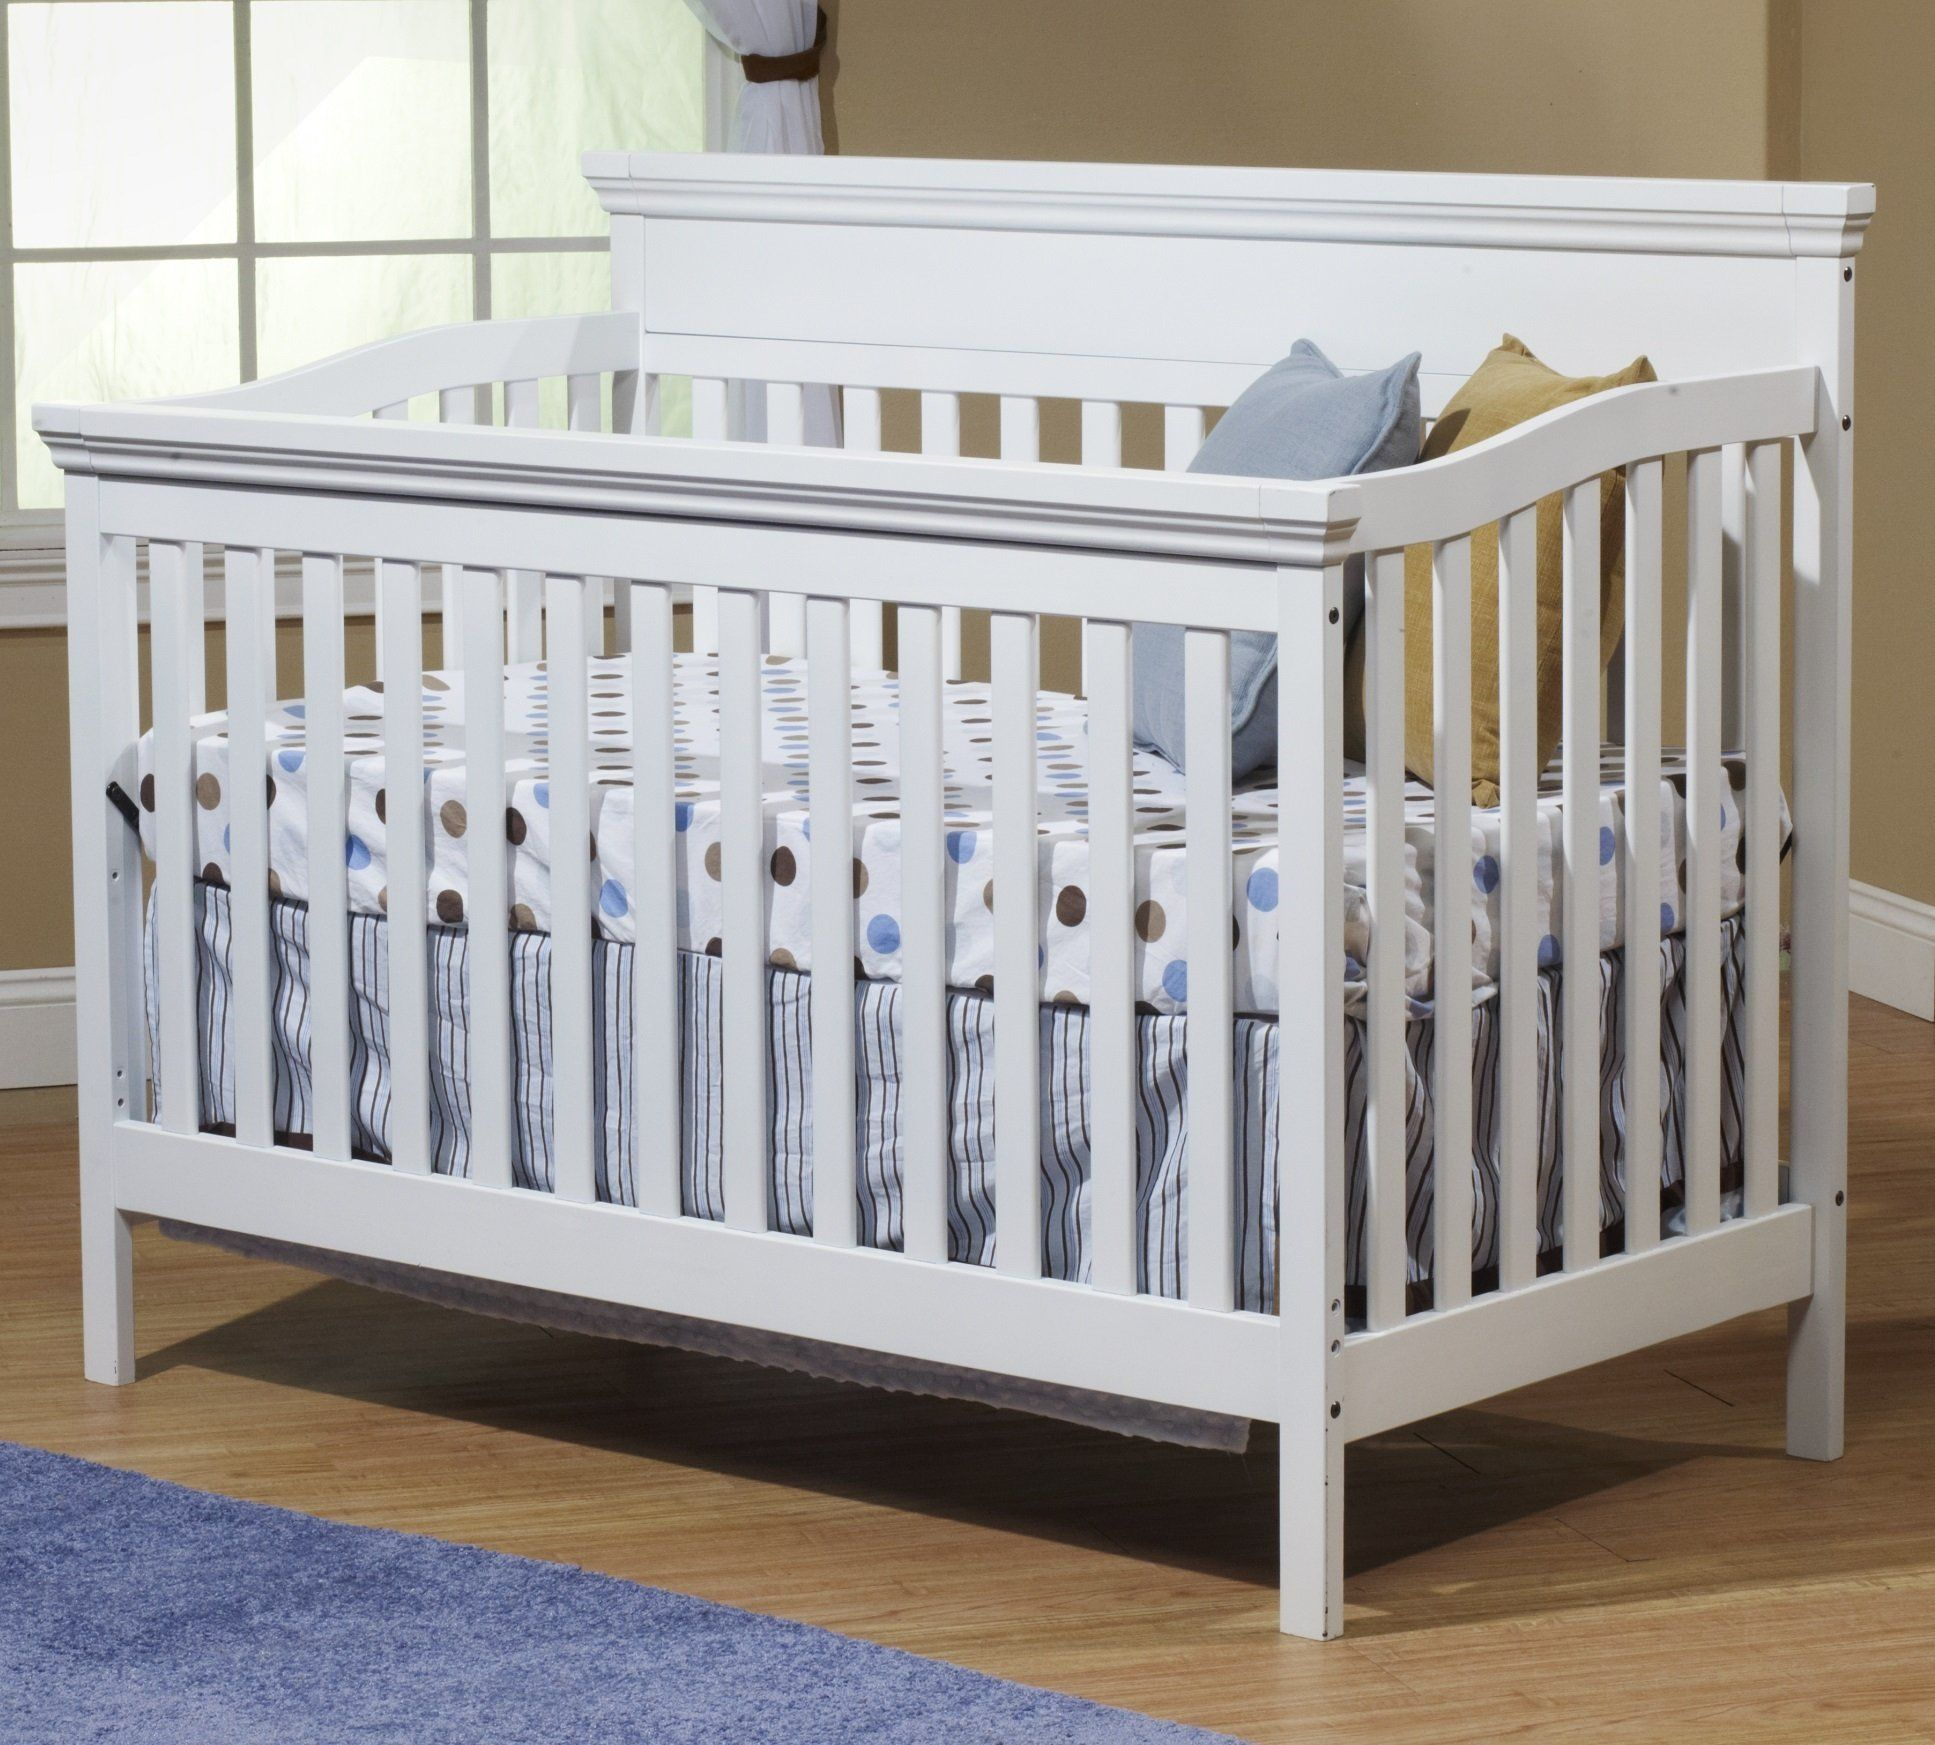 Crib heights for babies - Cribs